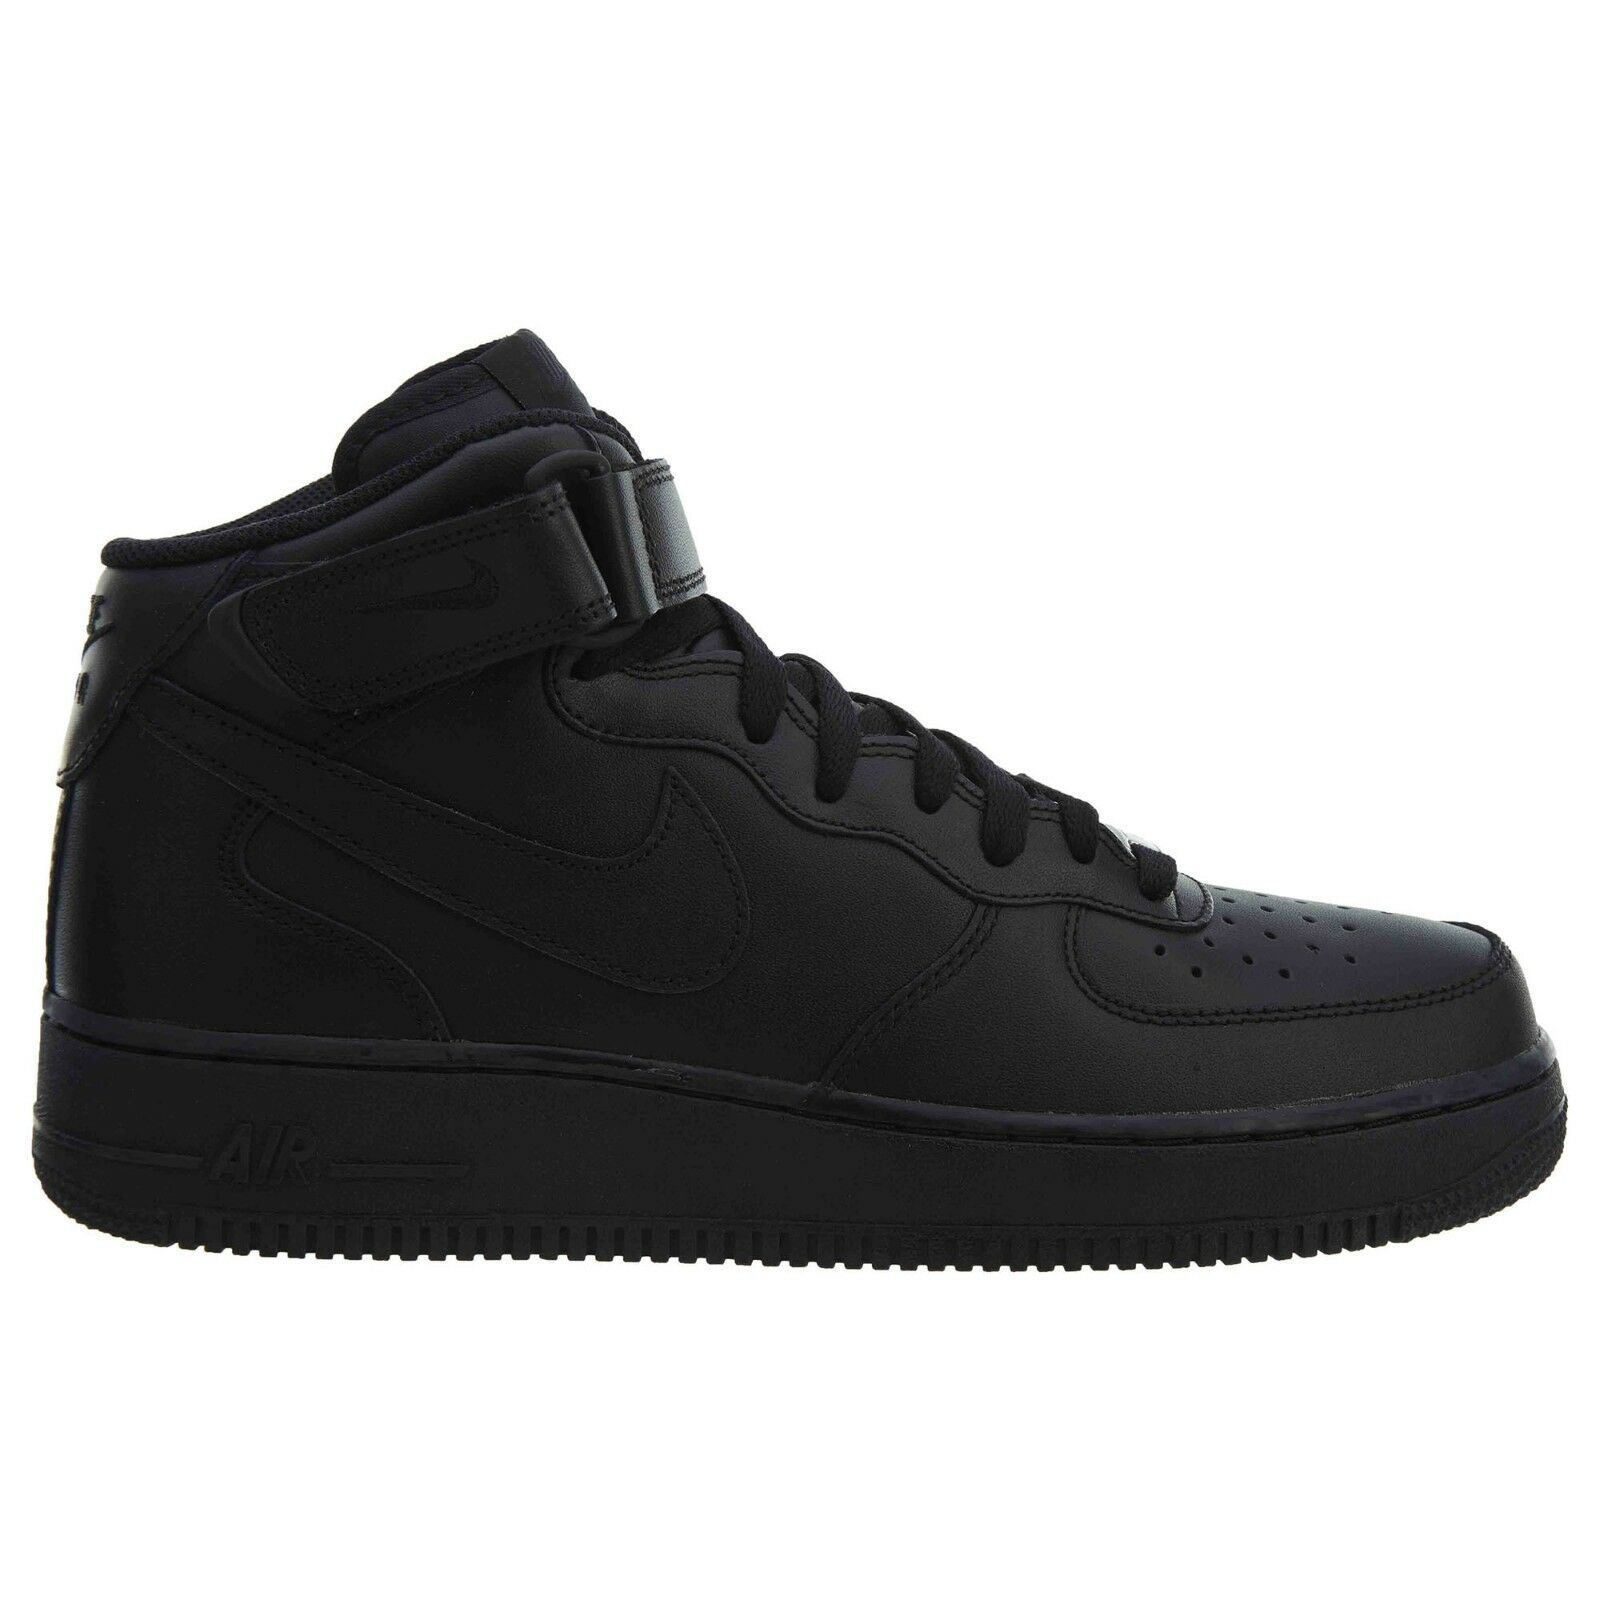 Nike Air Force 1 Mid '07 Mens 315123-001 Black Leather Athletic shoes Size 8.5